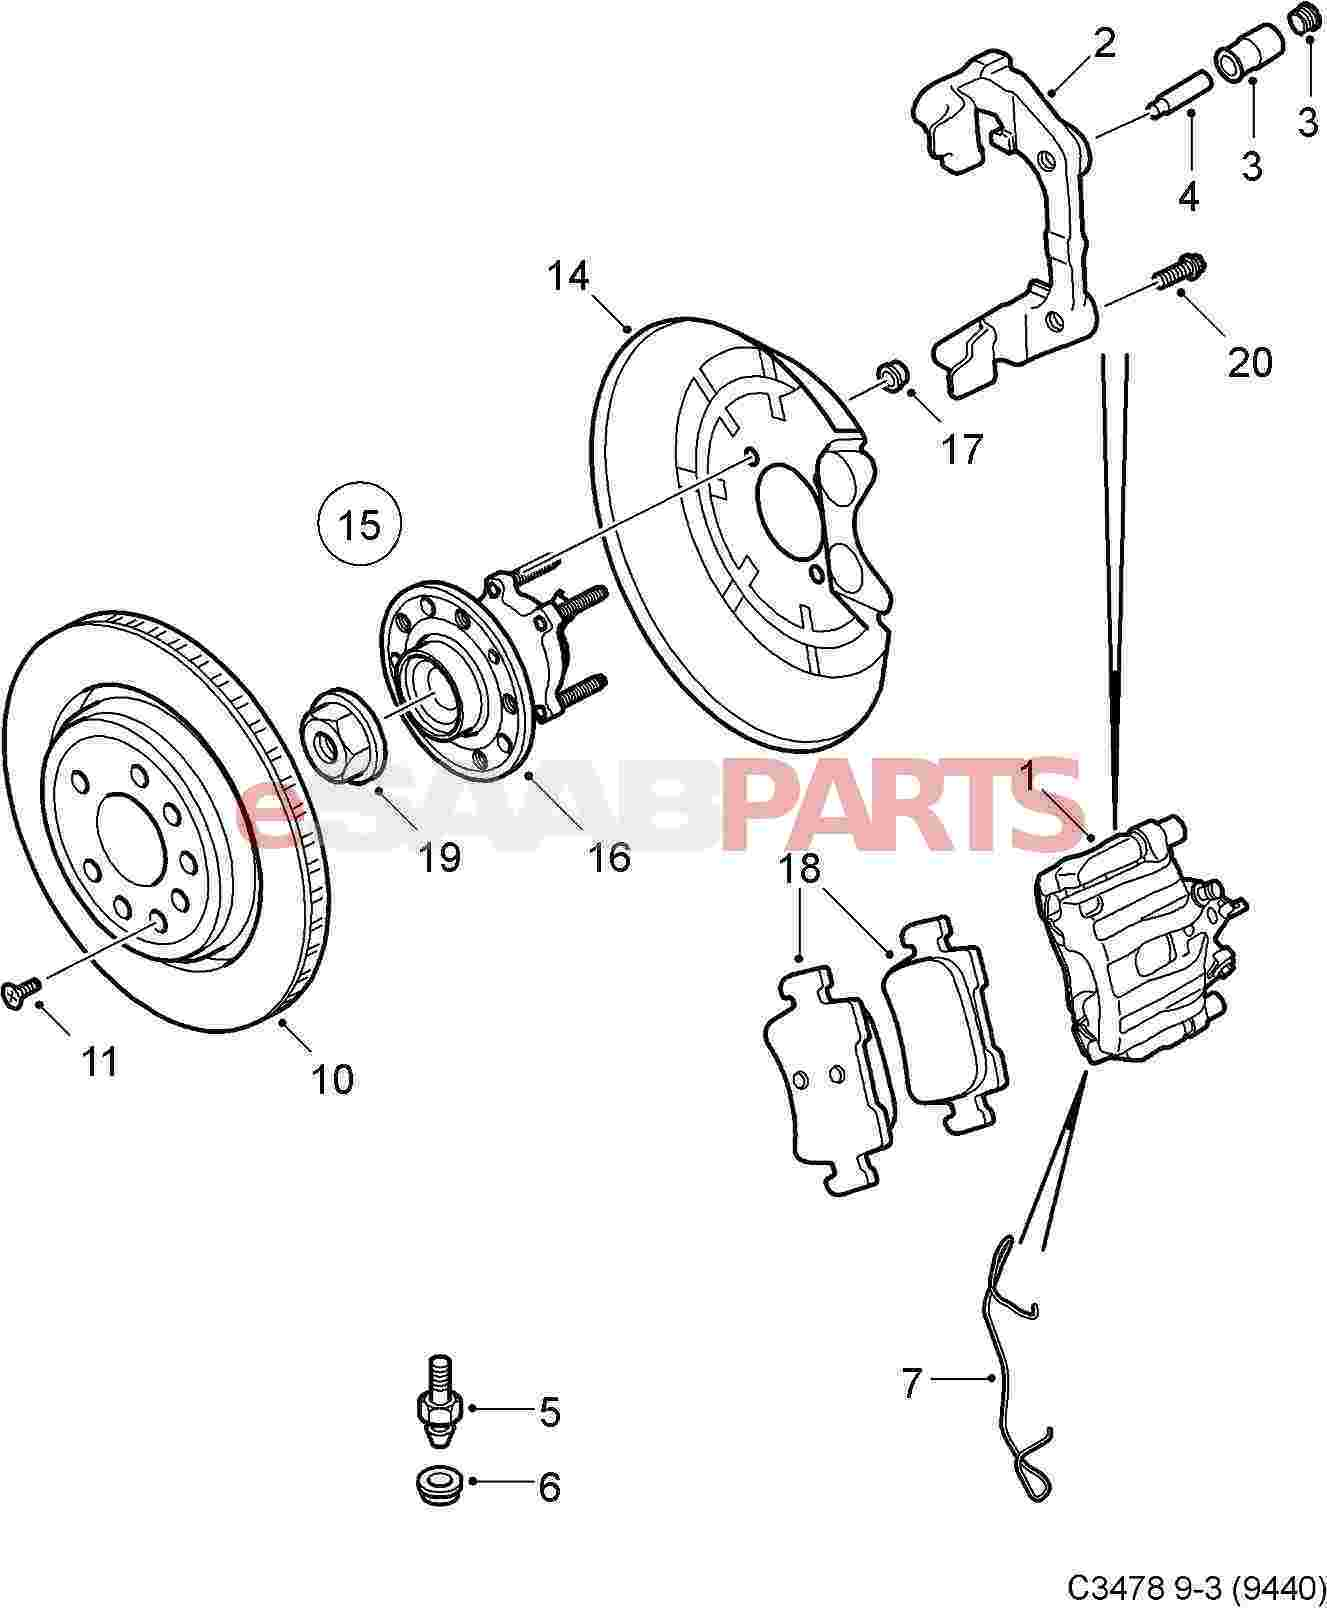 1986 Nissan 200sx Engine Diagram Wiring Schematic Auto Electrical Parts For 1998